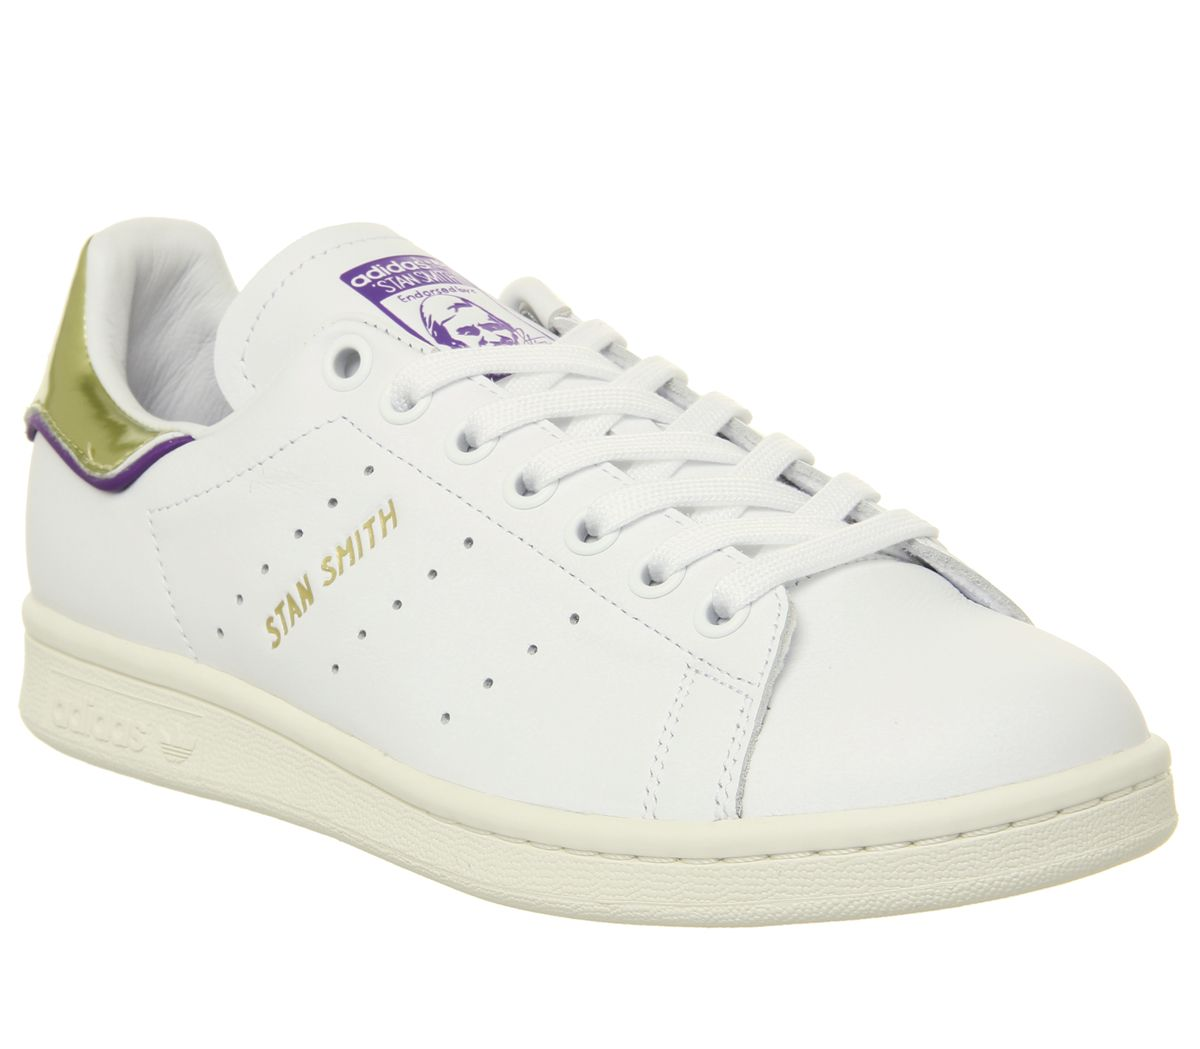 low priced 27655 2f089 adidas Stan Smith Trainers Off White Purple Gold Metallic Elizbeth ...